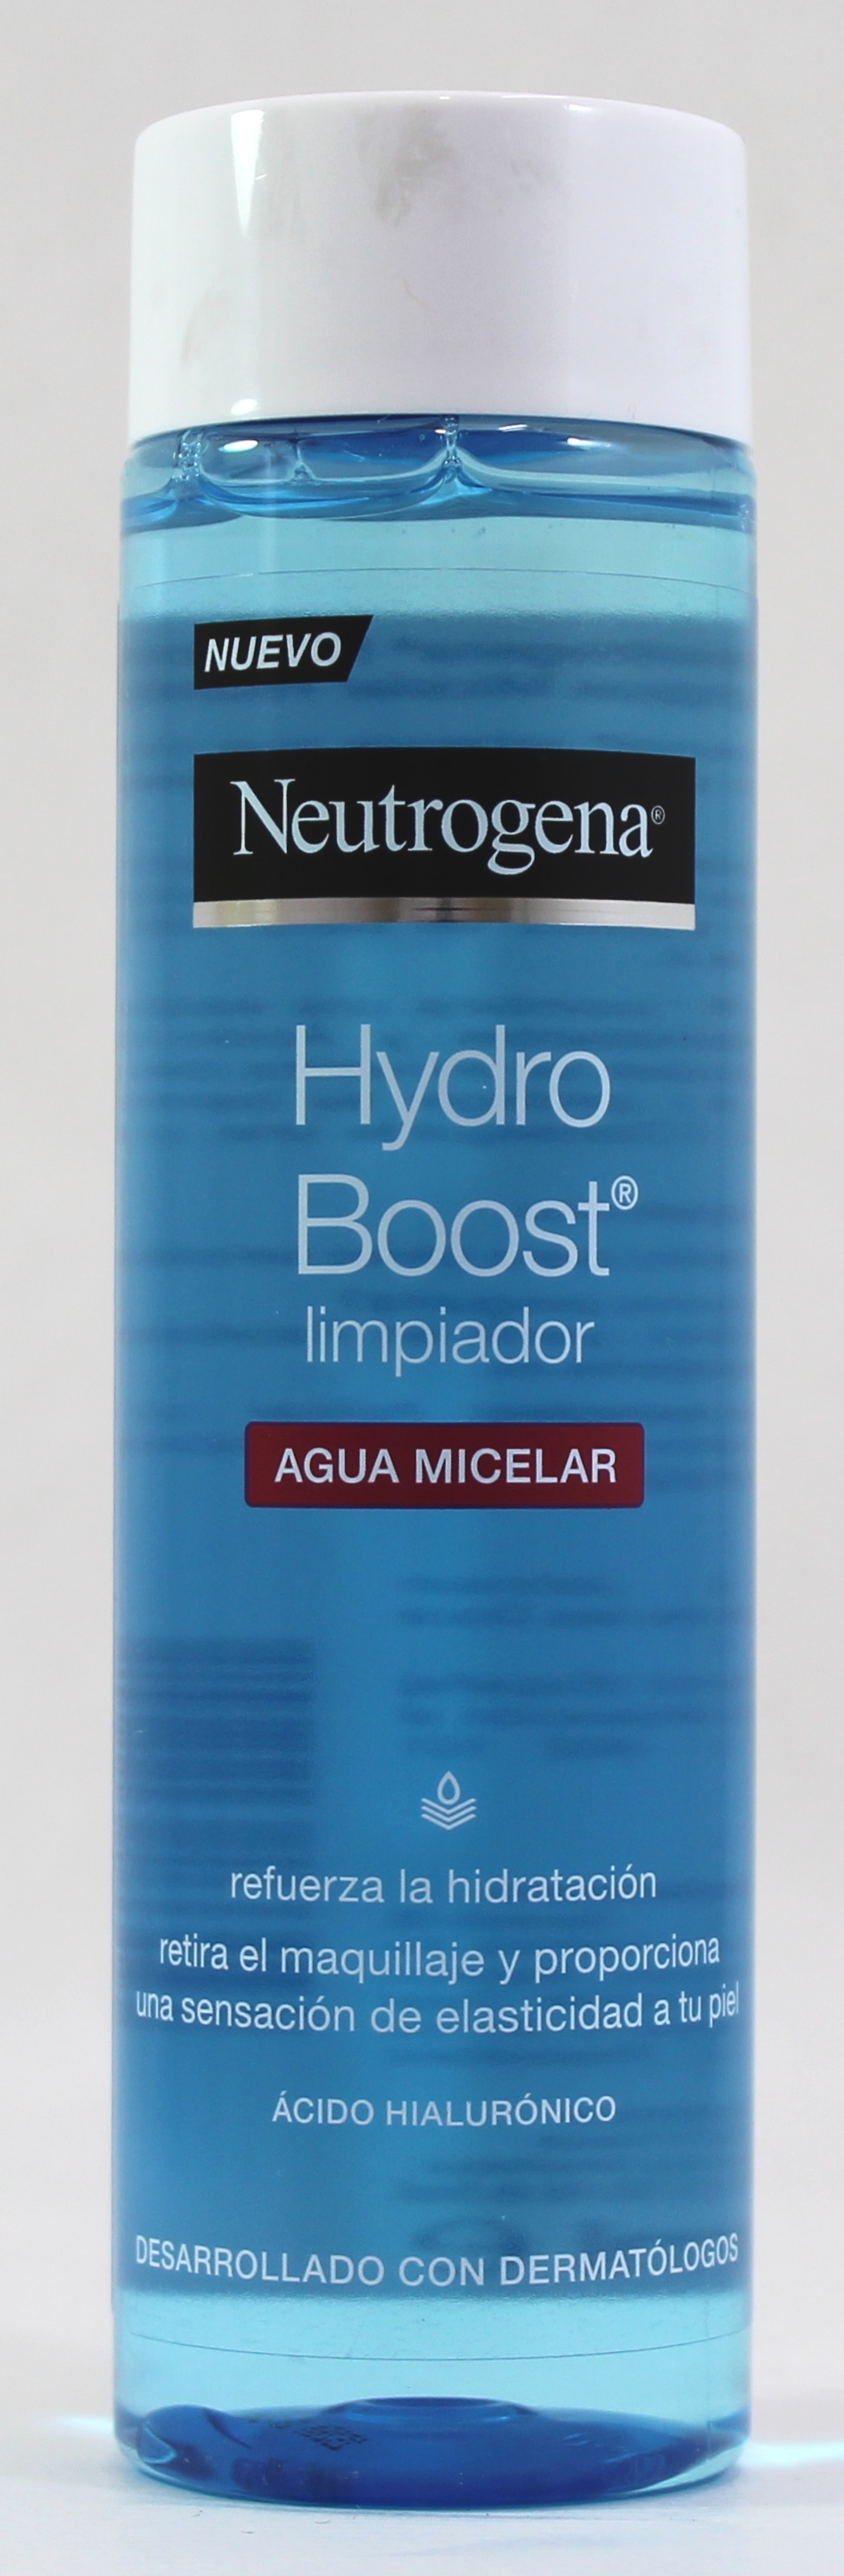 NEUTROGENA HYDRO BOOST AGUA MICELAR 200ML